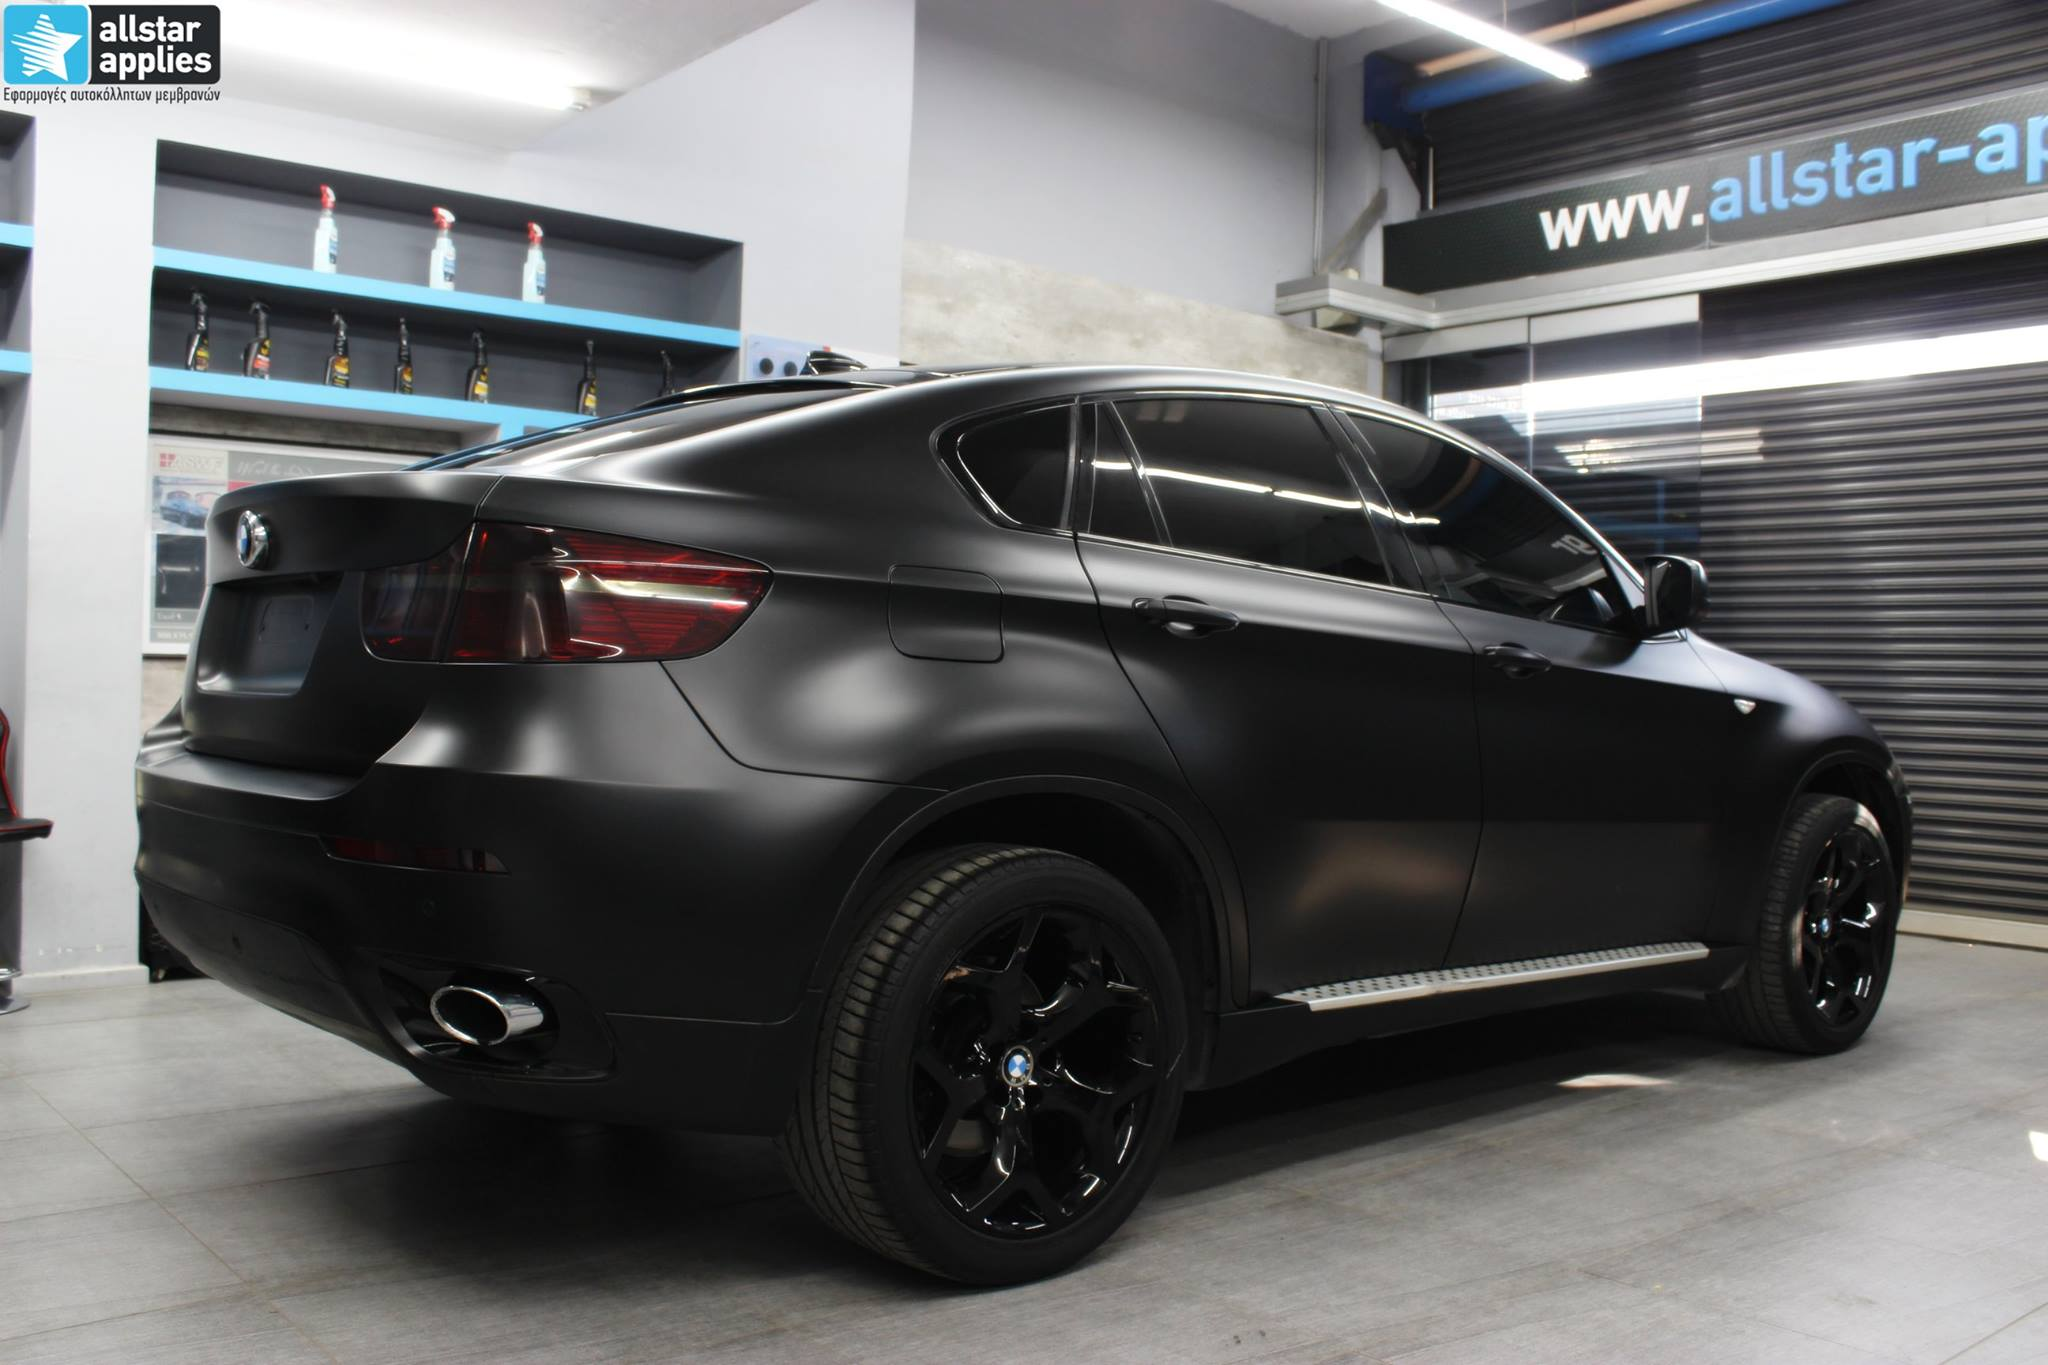 Bmw X6 - Satin Black Matte (1)